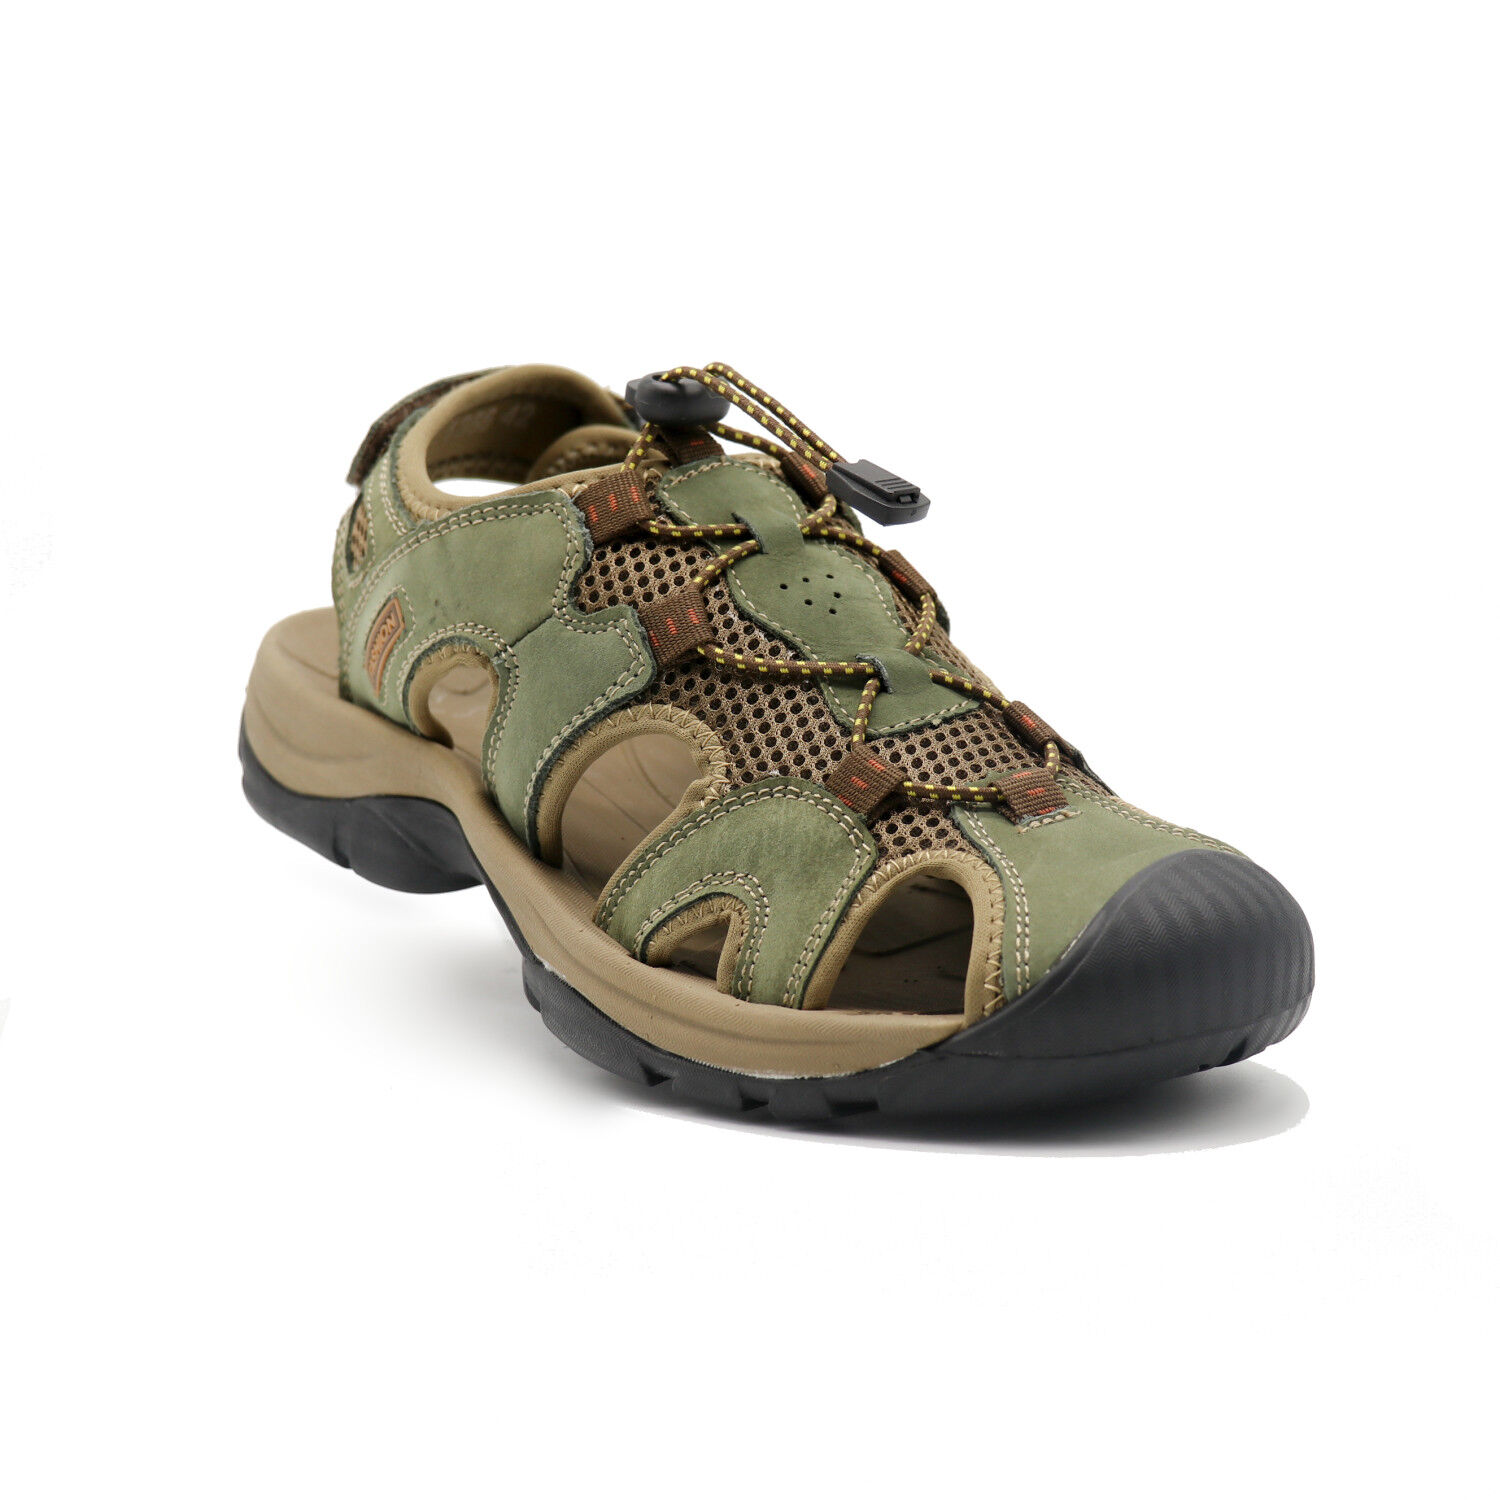 3bb7255478ae You may also like. Men s Summer Casual Closed Toe Fisherman Sandals ...